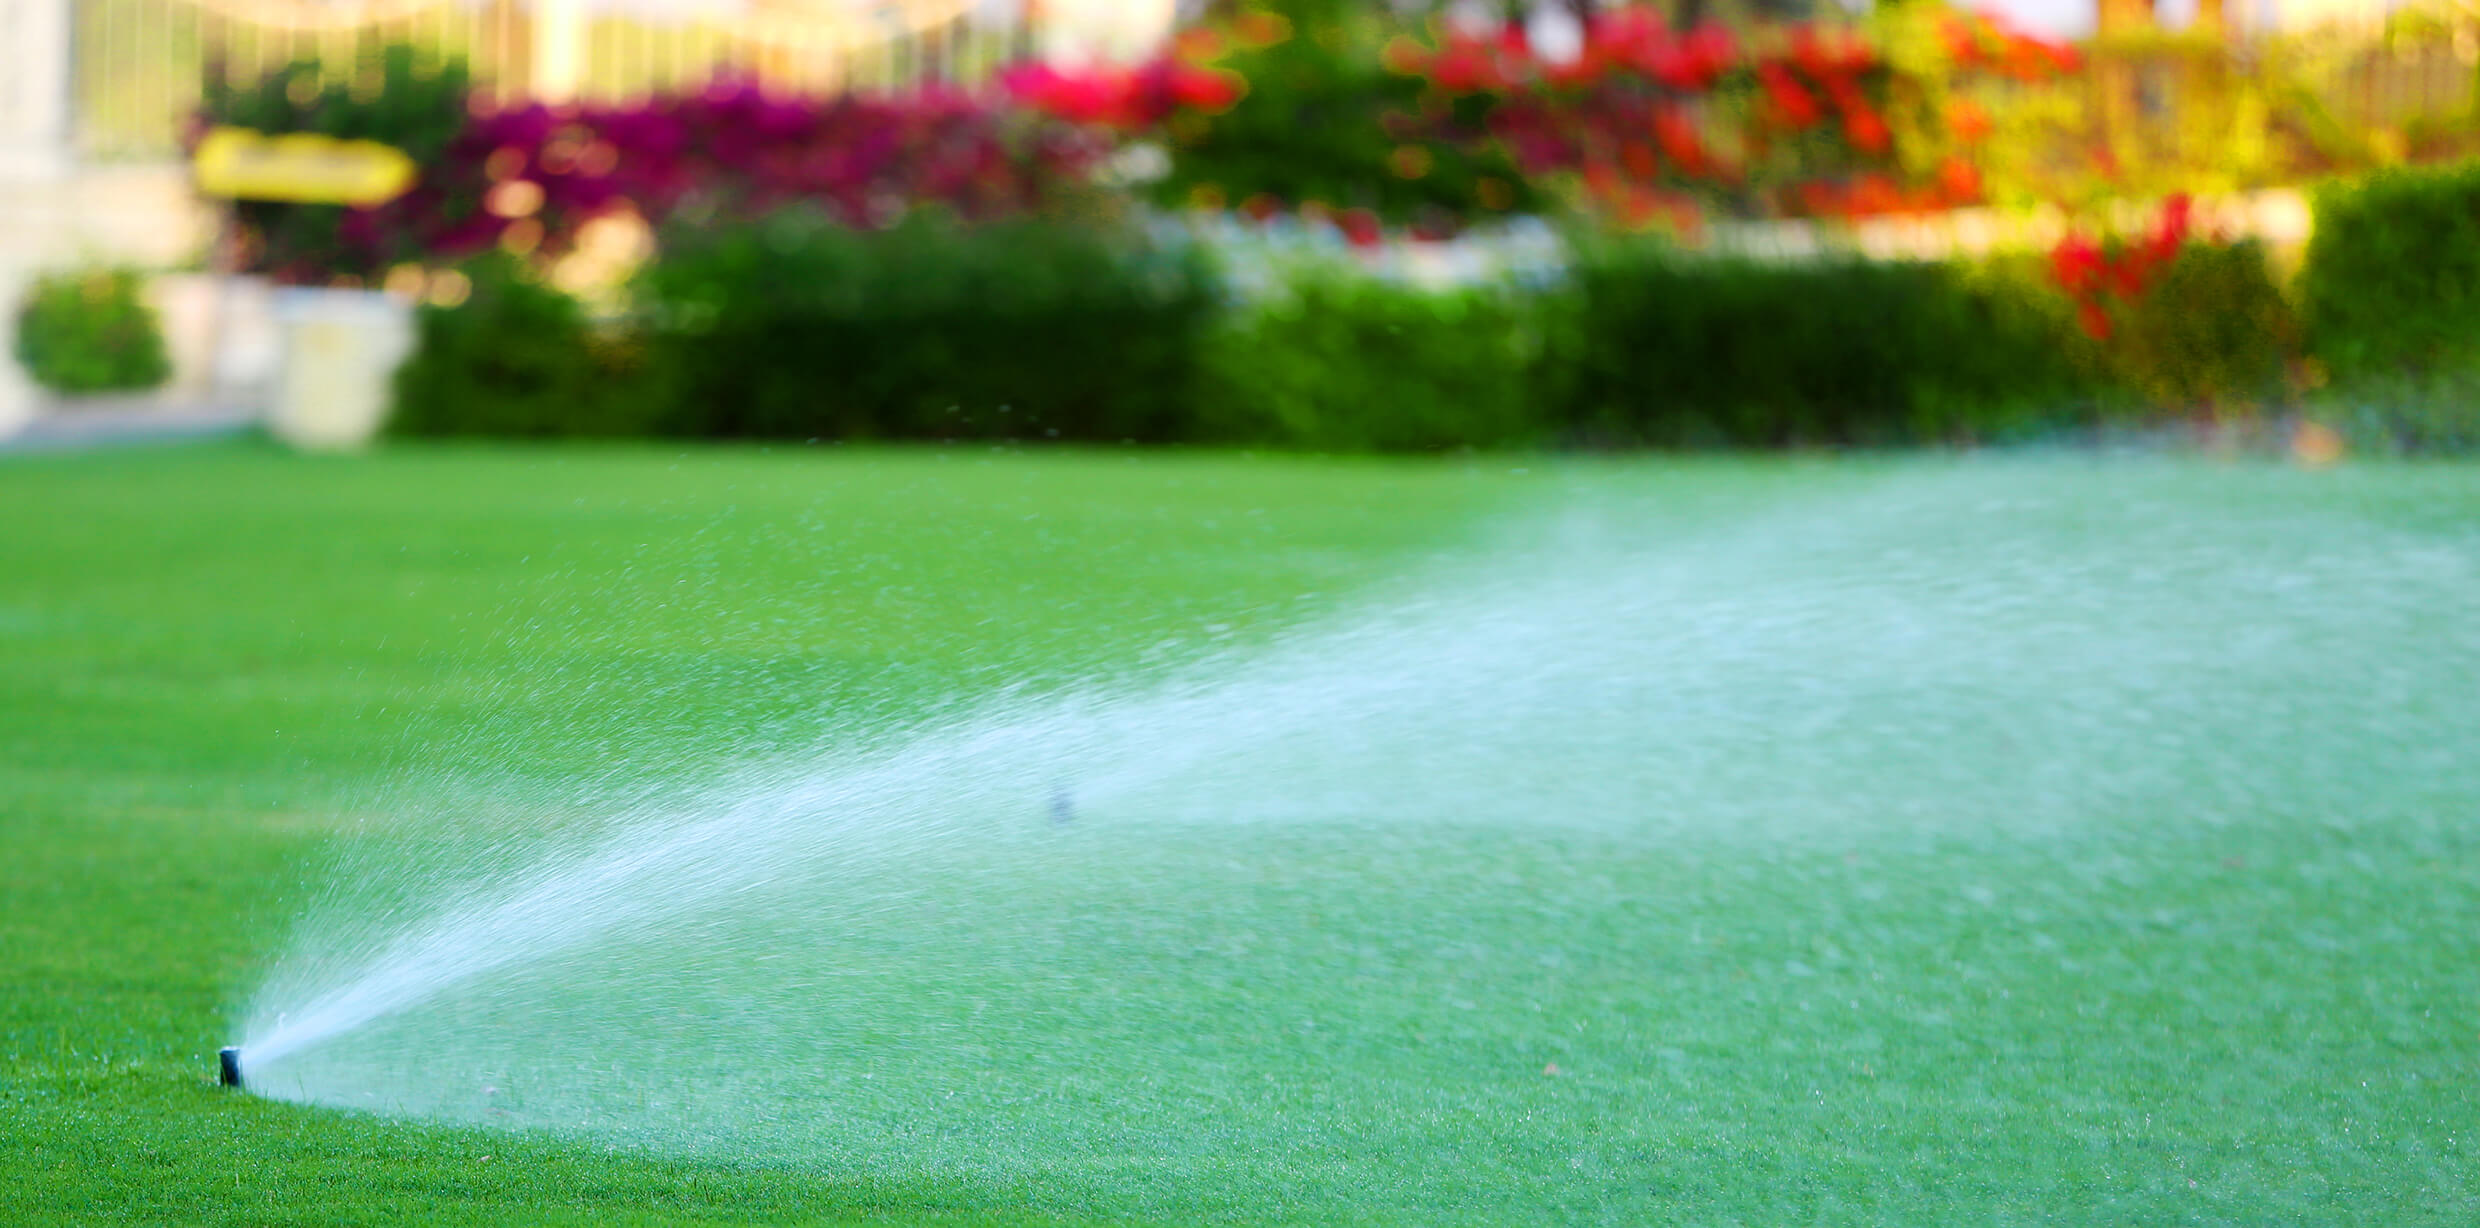 Mueller Sprinklers is a full service sprinkler comapny located in Columbus, NE